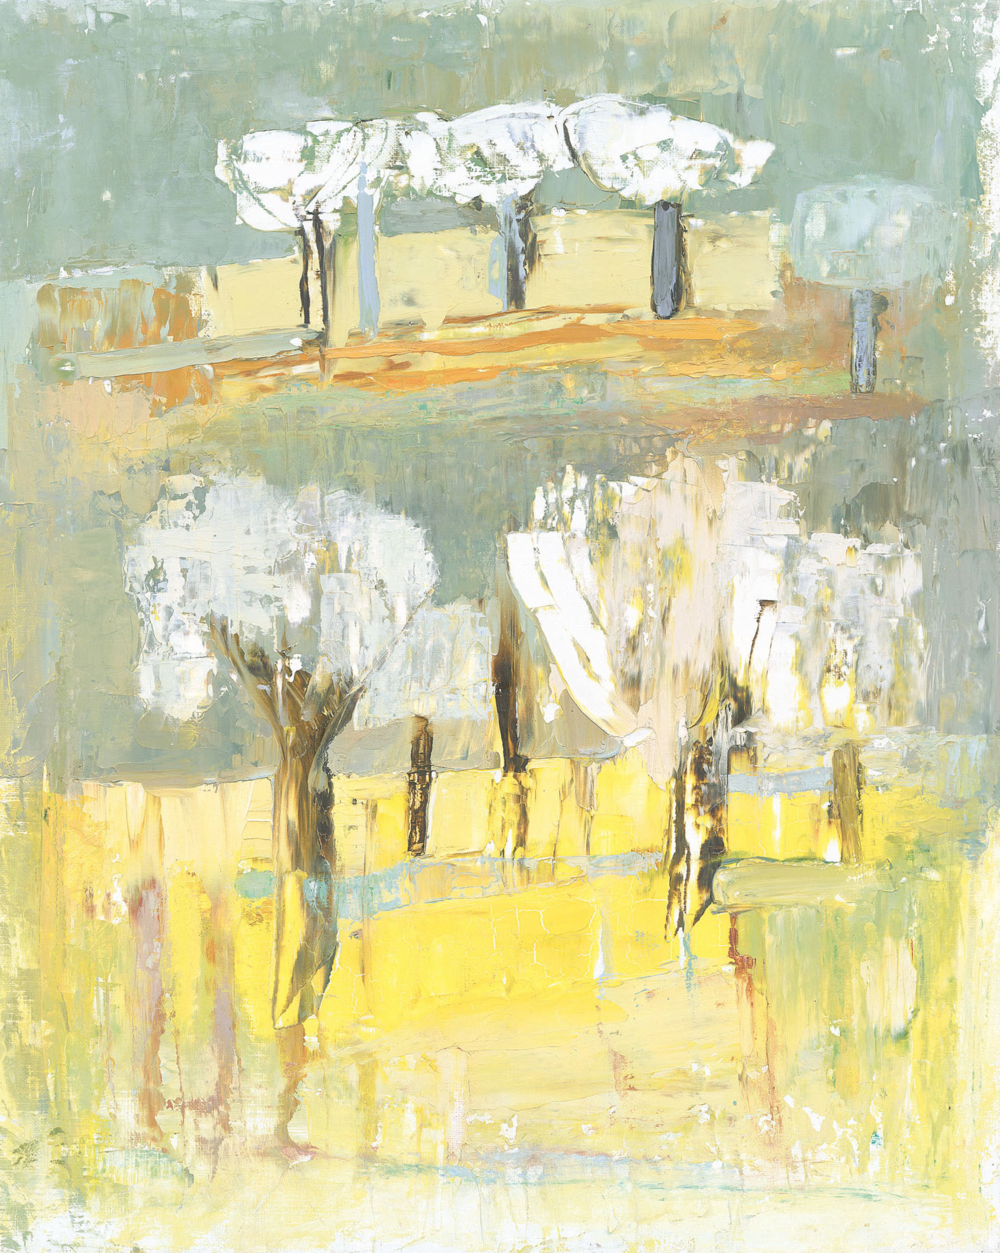 Anne Donnelly_-_Trees in Bloom_oil on board_35 x 34cm.jpg